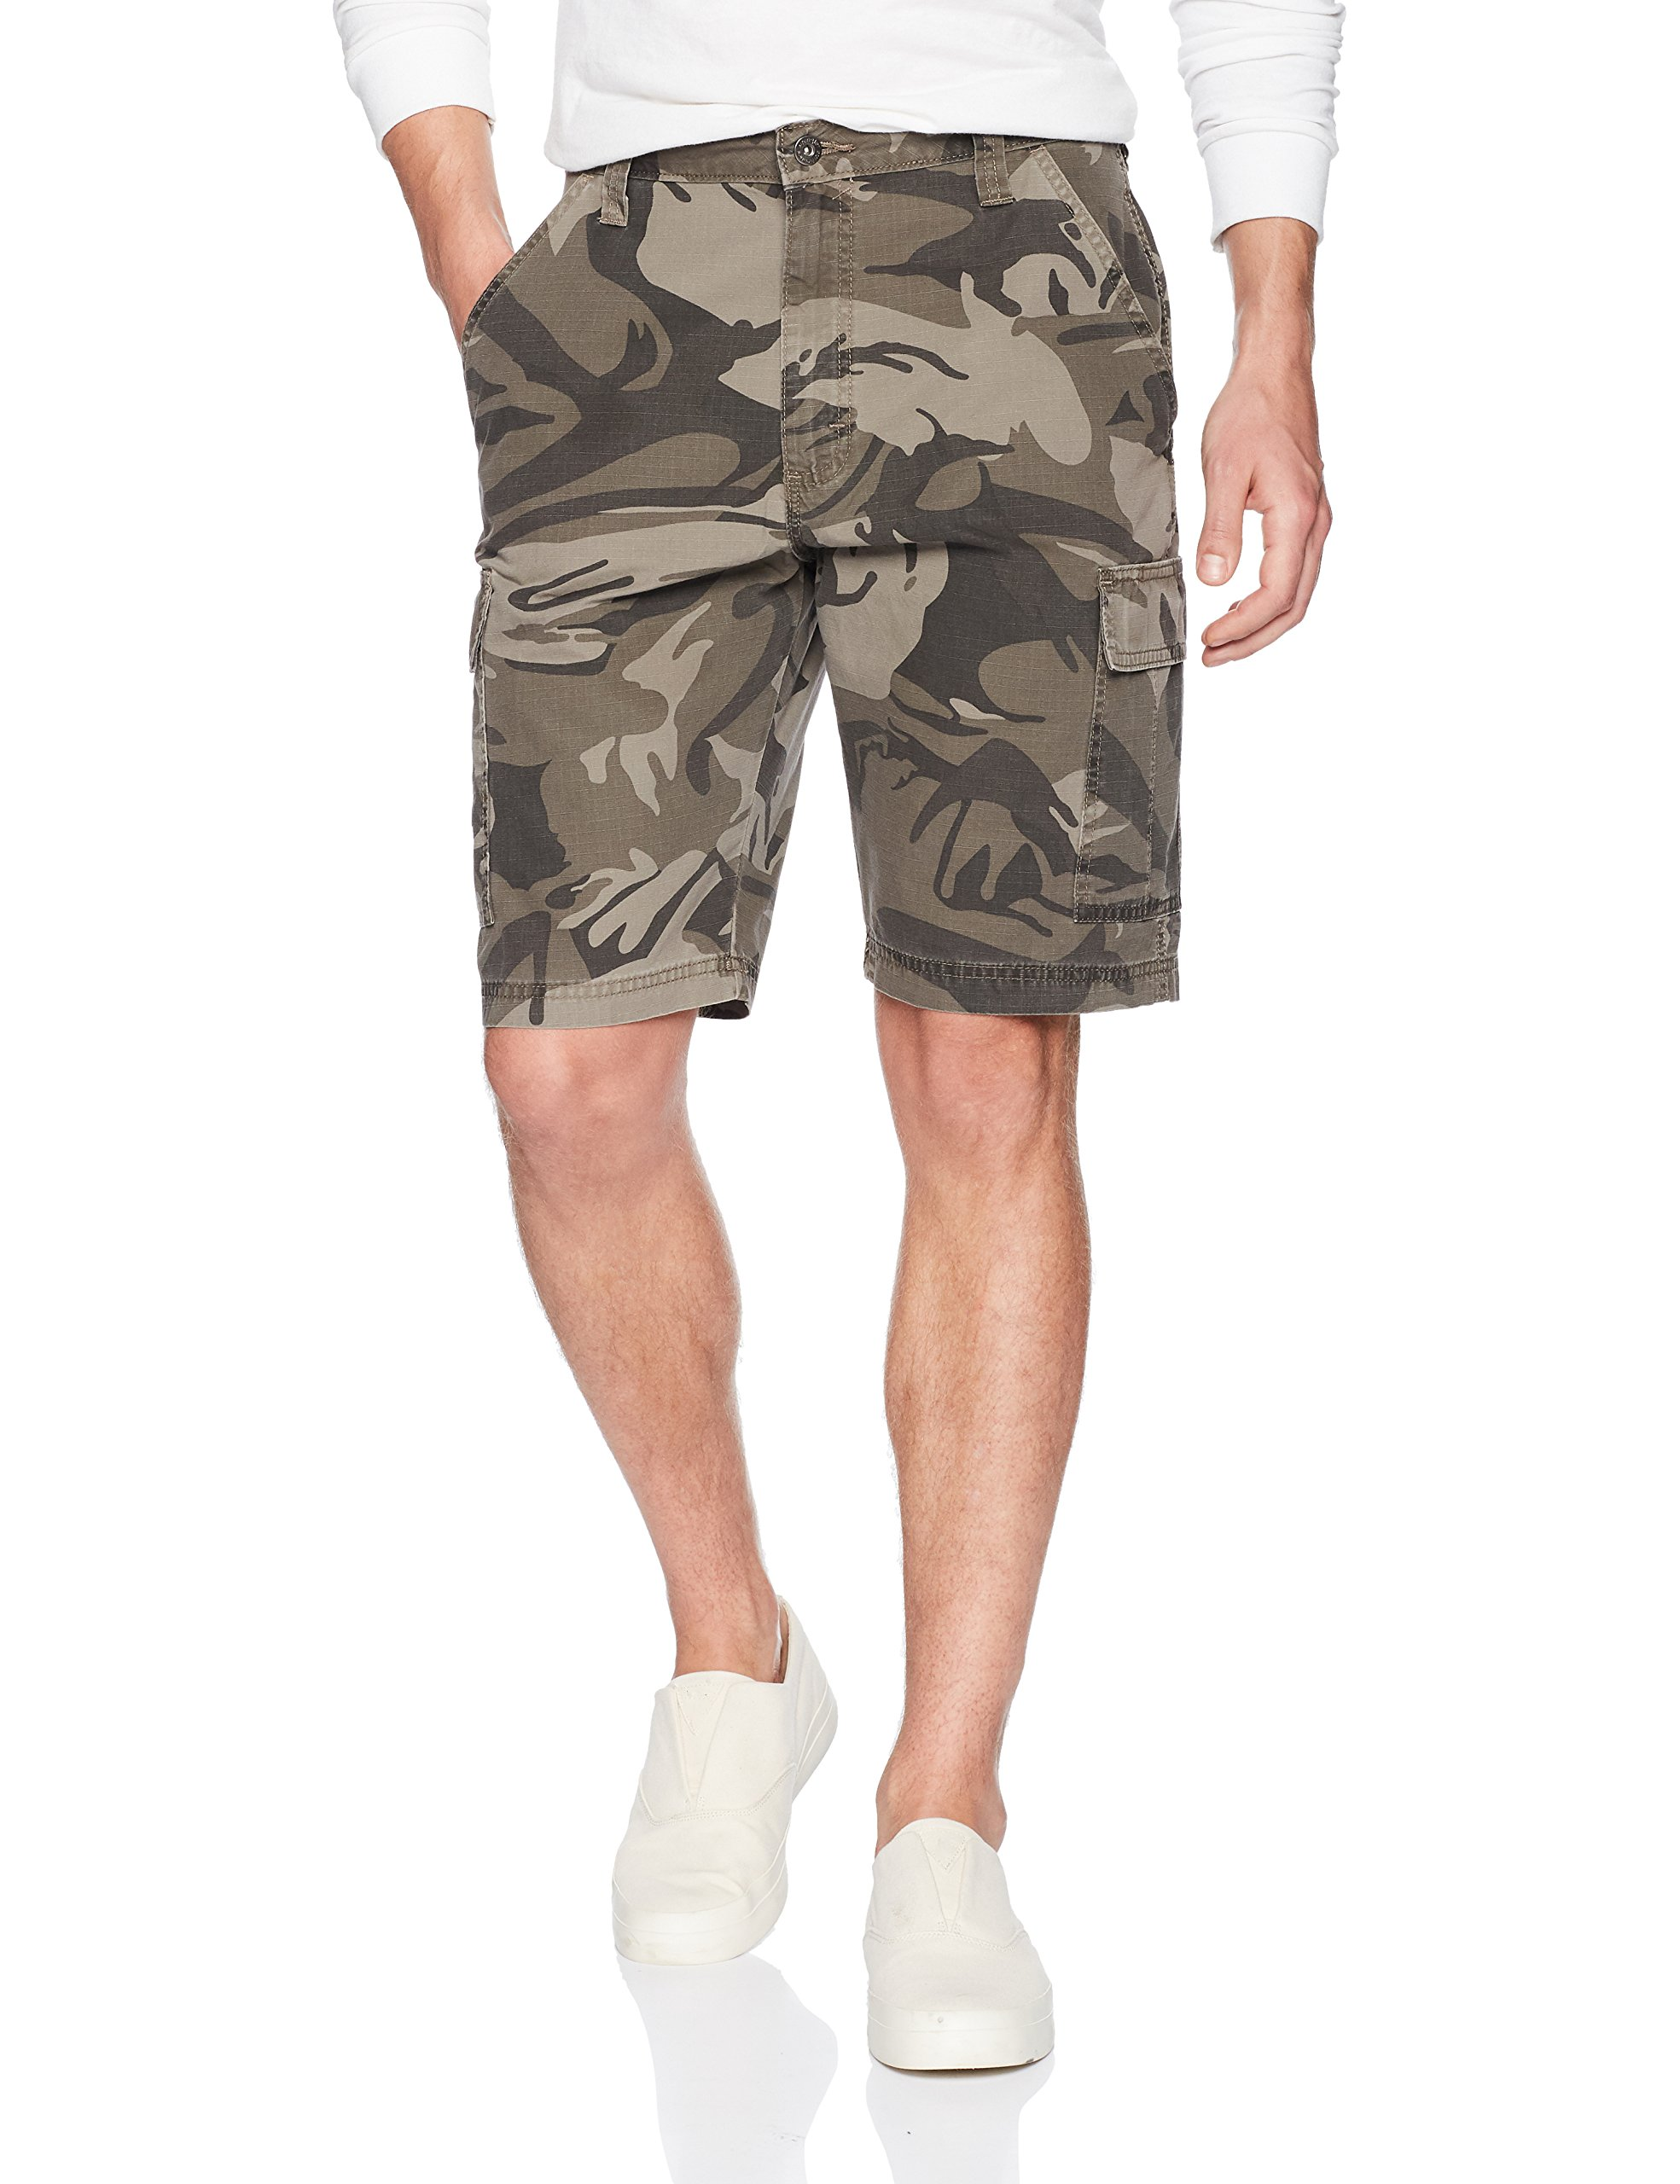 Wrangler Authentics Men's Classic Relaxed Fit Cargo Short, Dark Khaki Camo Ripstop, 38 by Wrangler (Image #1)